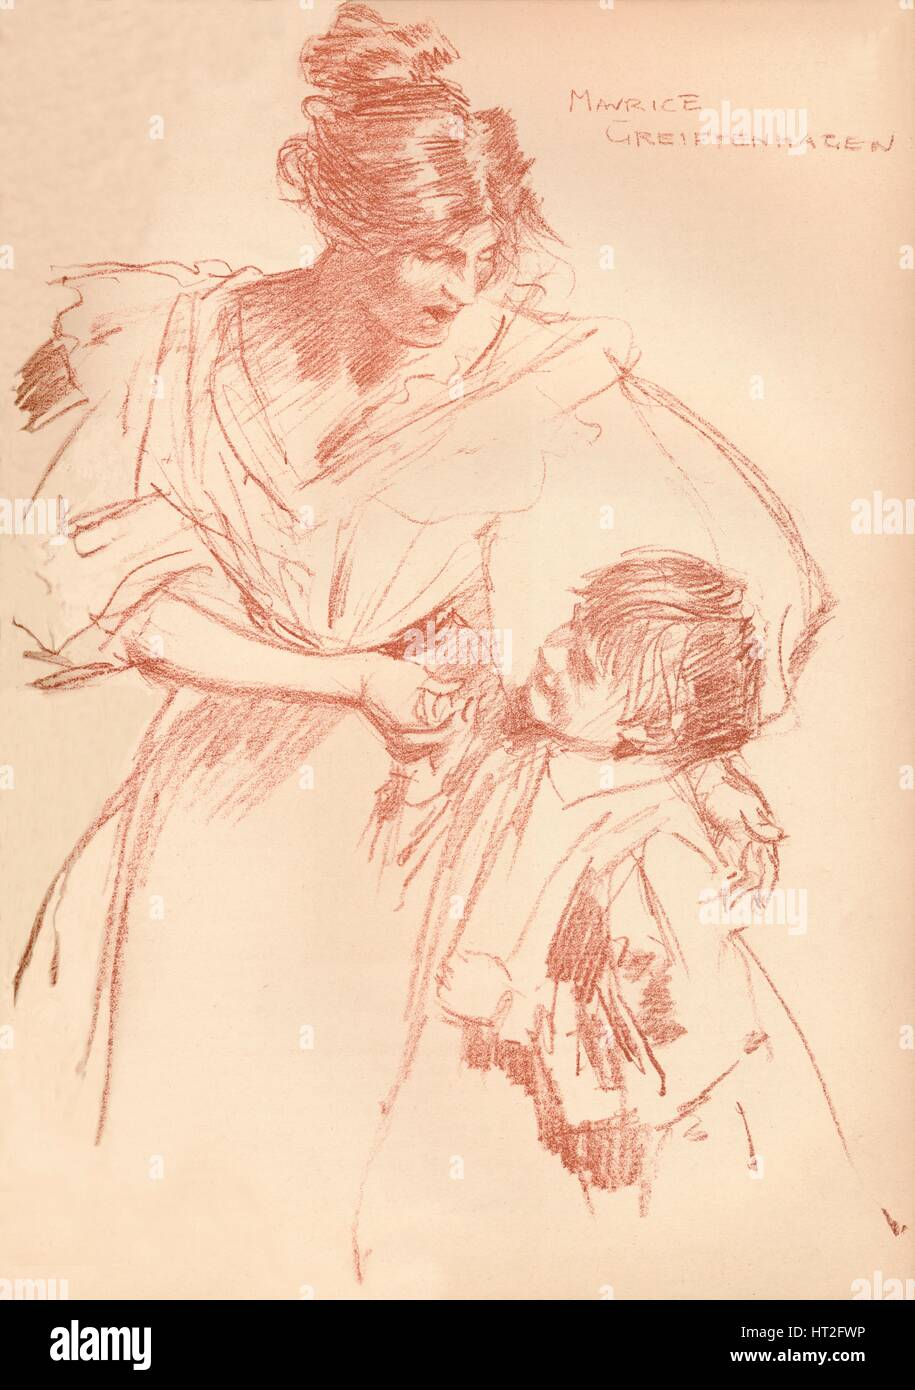 'Mother and child', c1897, (1897). Artist: Maurice Greiffenhagen. - Stock Image